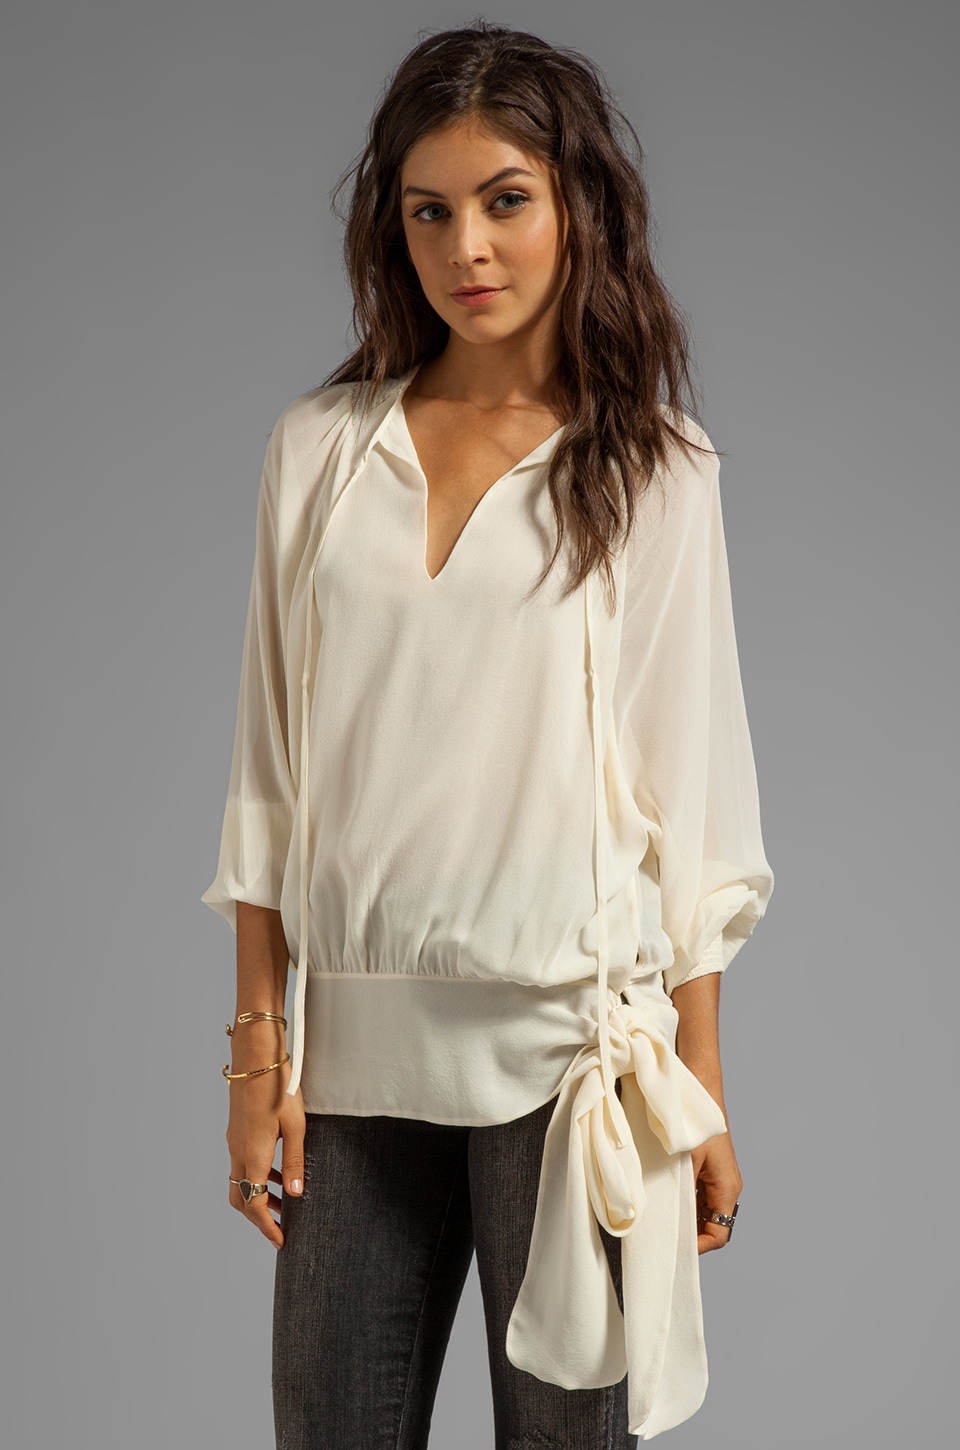 Skaist Taylor Blouse with Tie in Cream